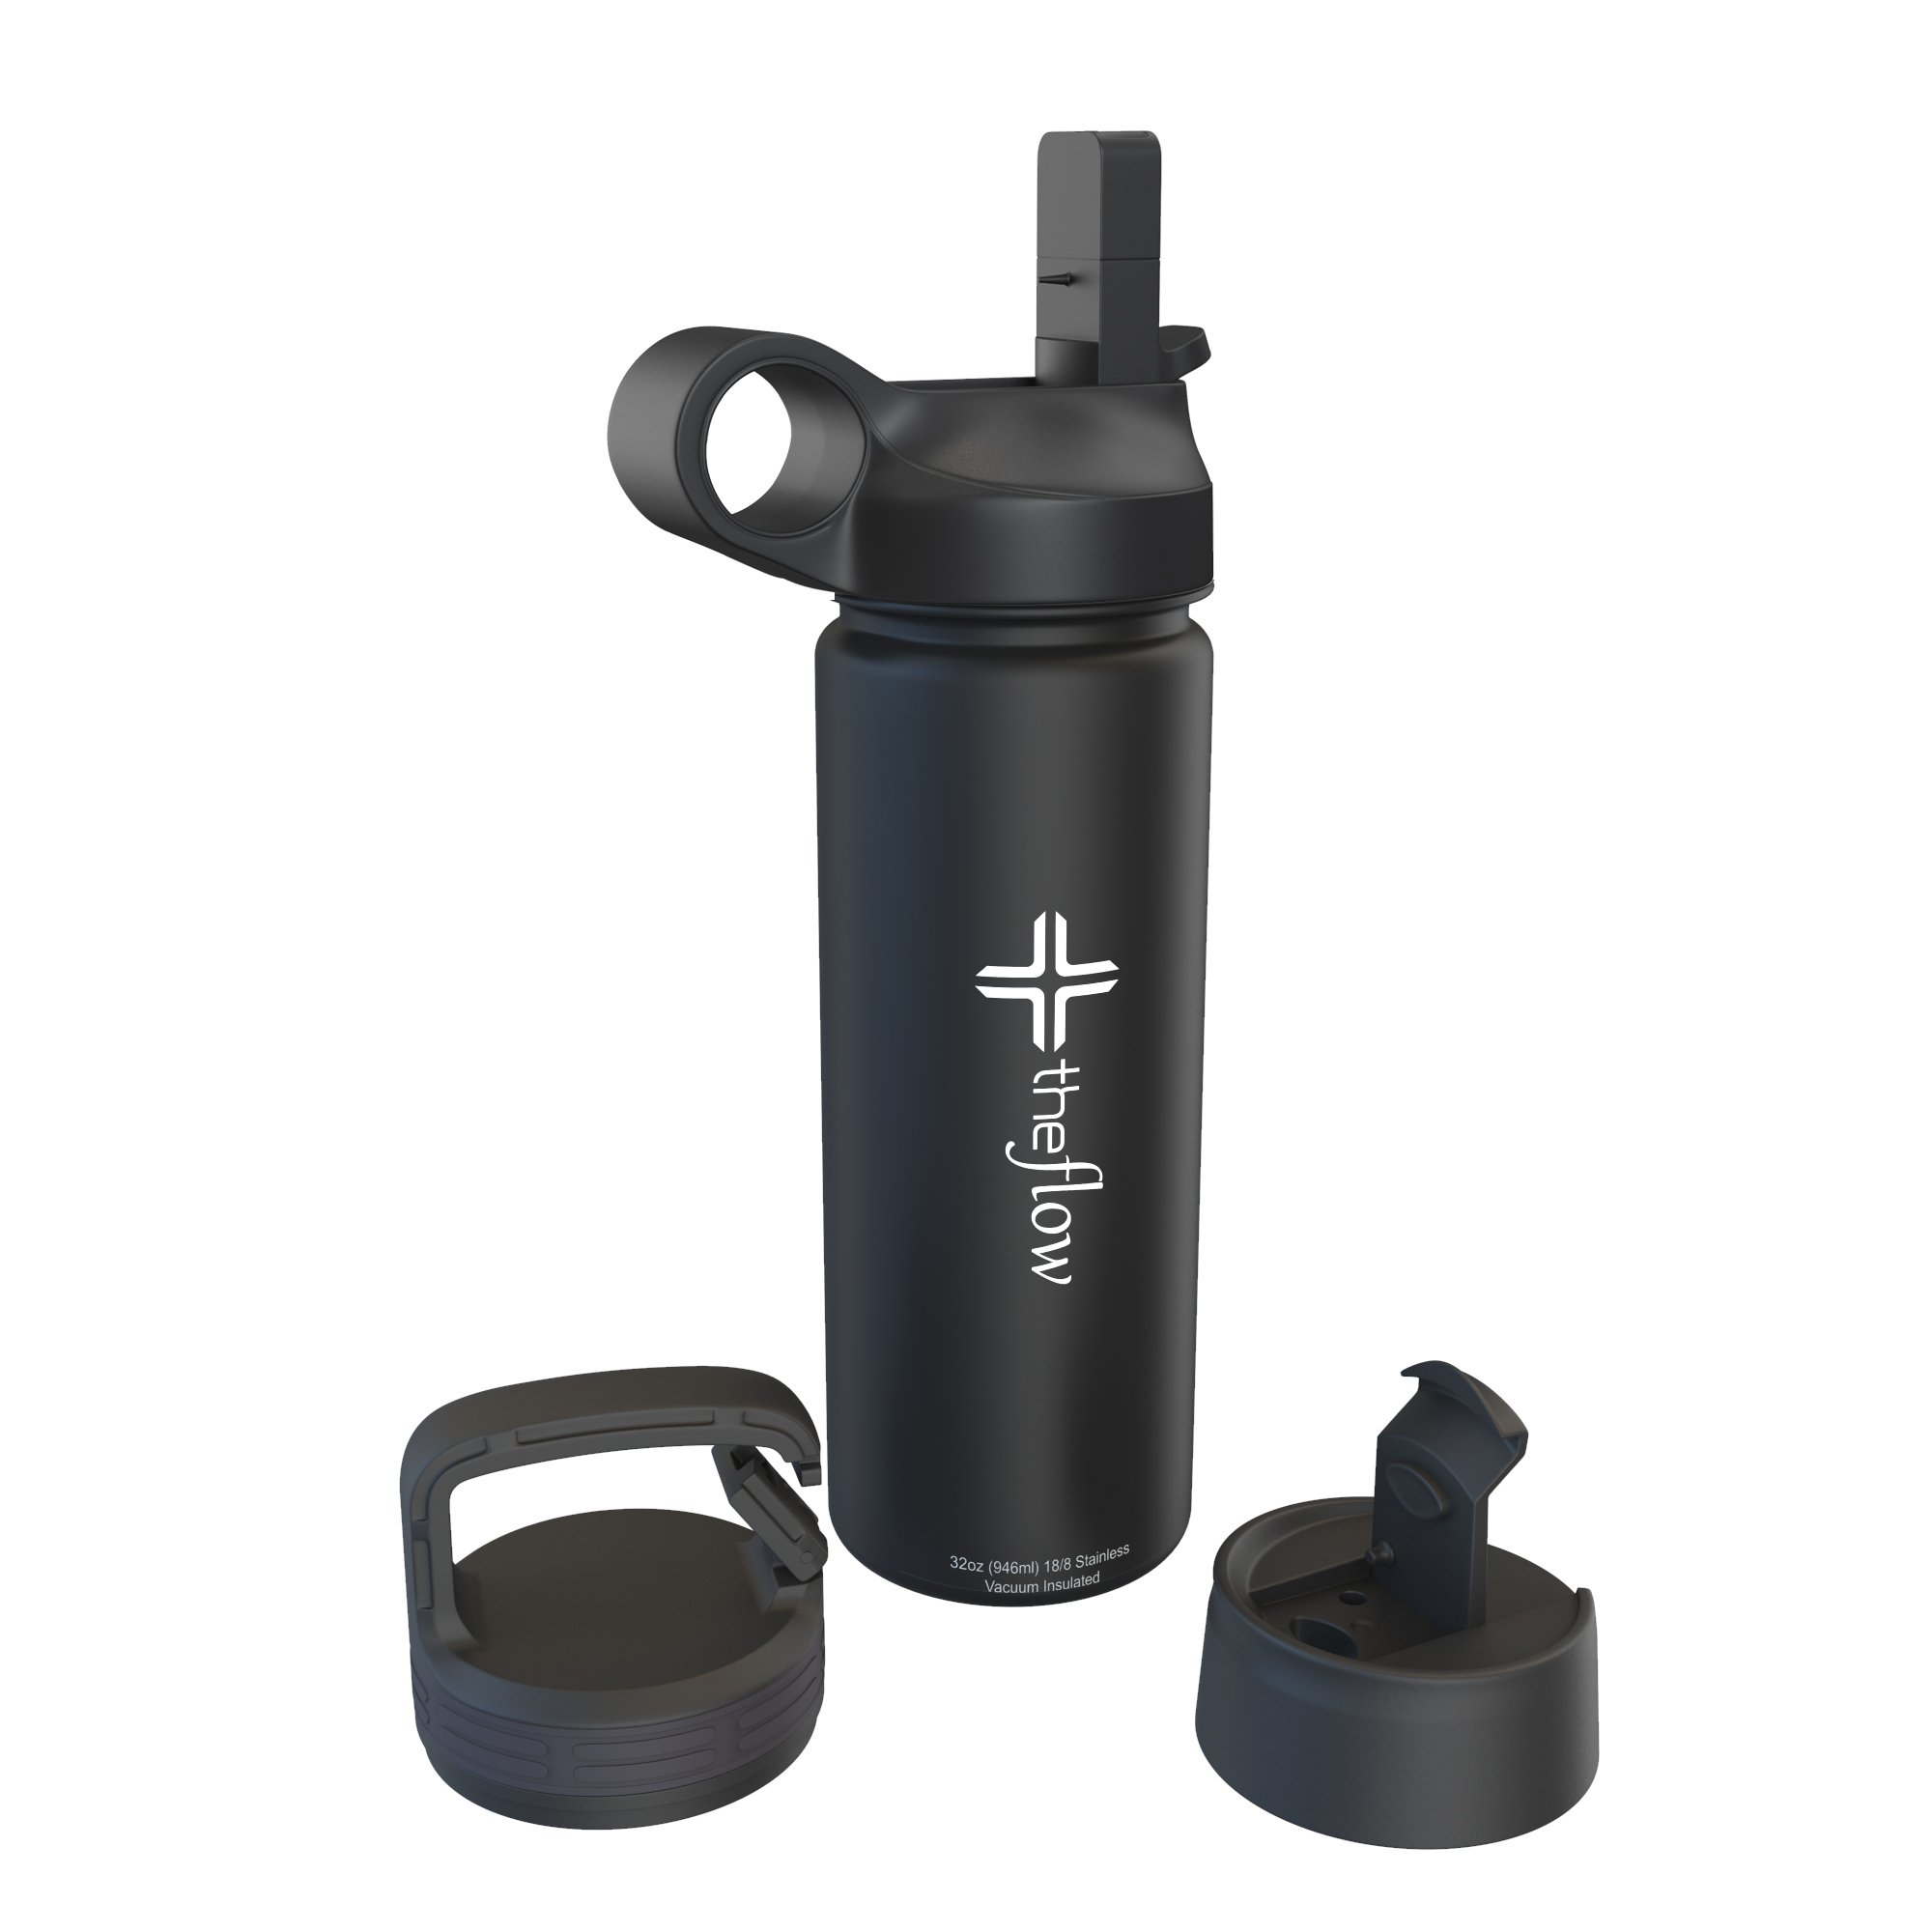 the flow Stainless Steel Water Bottle Double Walled/Vacuum Insulated - BPA/Toxin Free – Wide Mouth Straw Lid, Carabiner Lid Flip Lid, 32 oz.(1 Liter) (Black, 18oz)